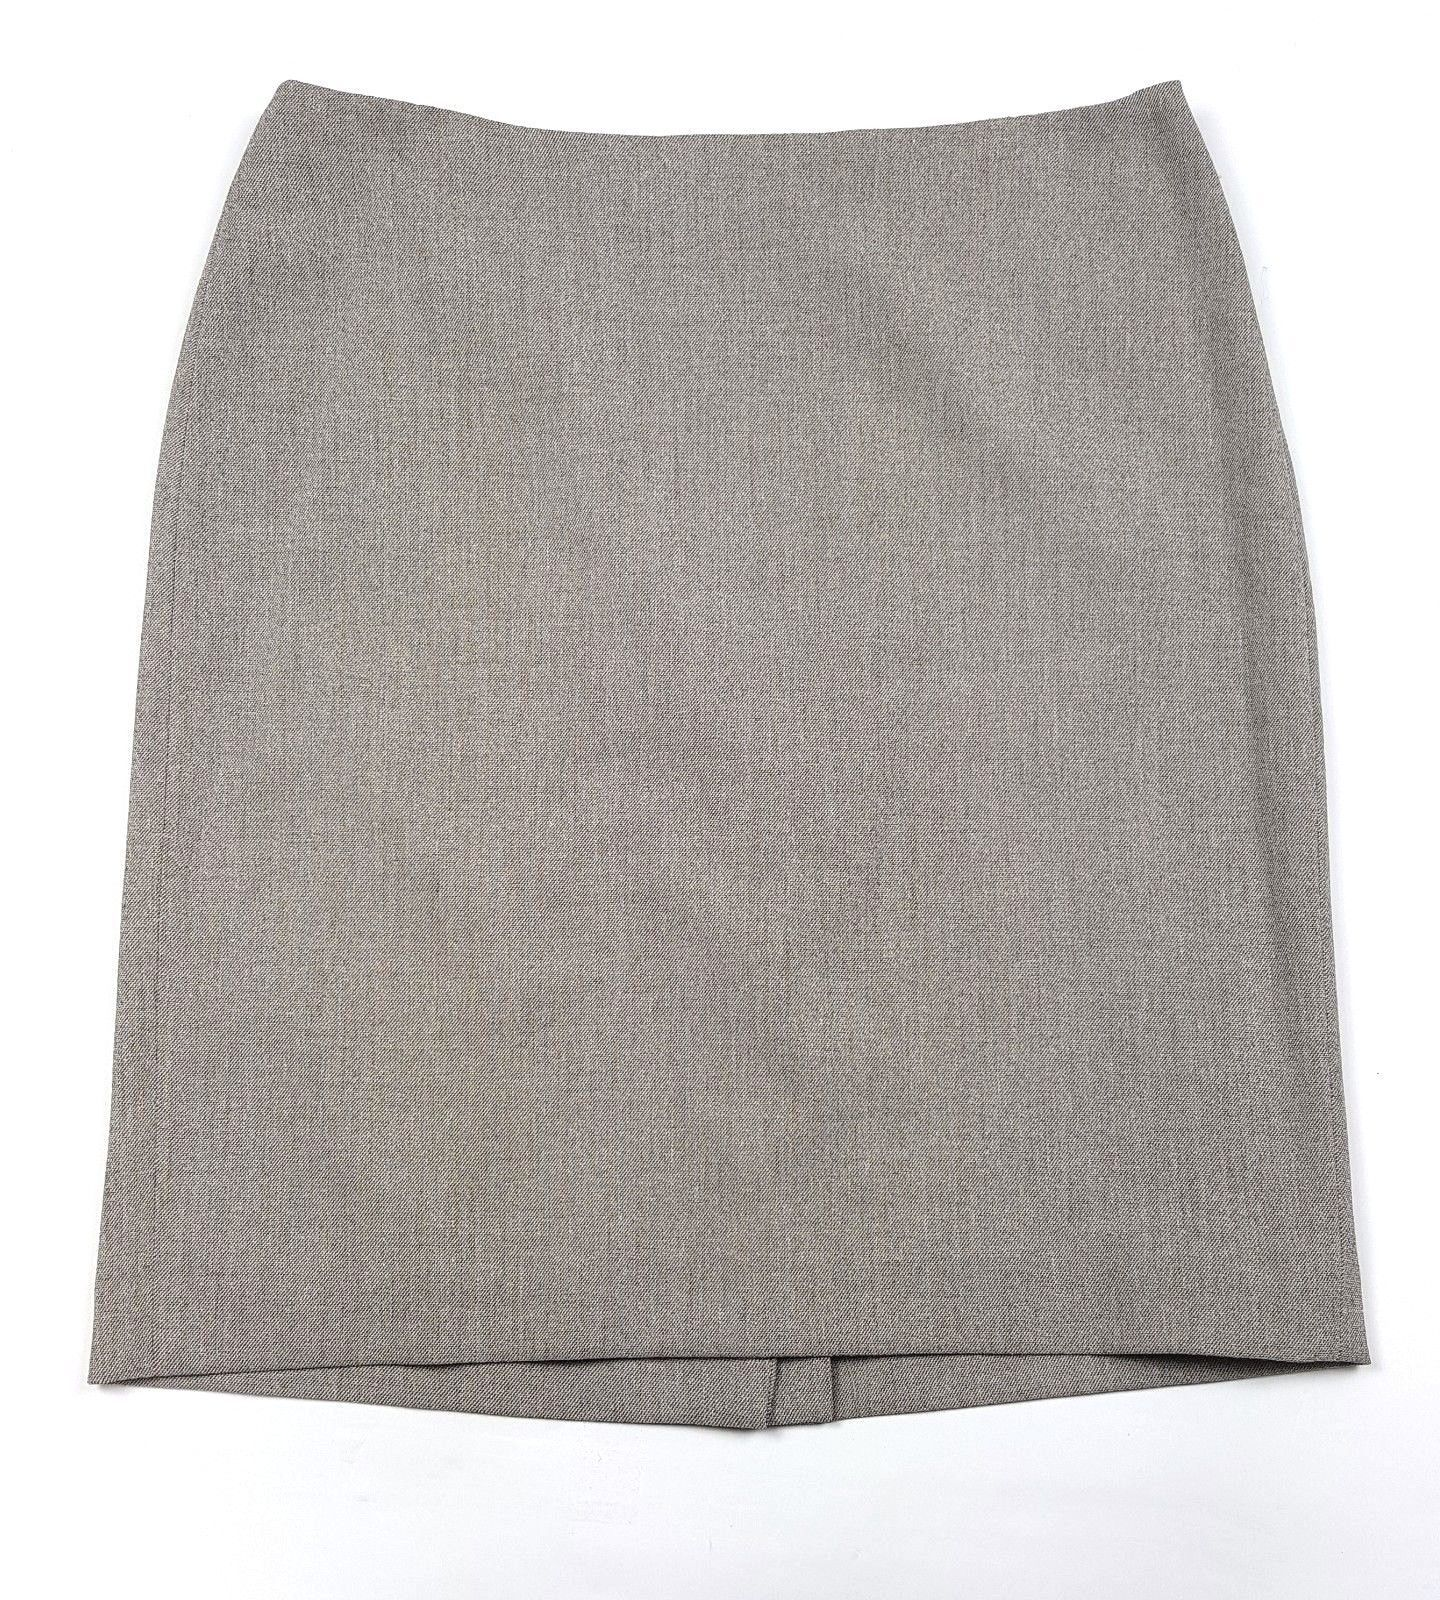 Anne Klein Women Size 10 Tan Lined Polyester Blend Back Zip Below Knee Skirt EUC